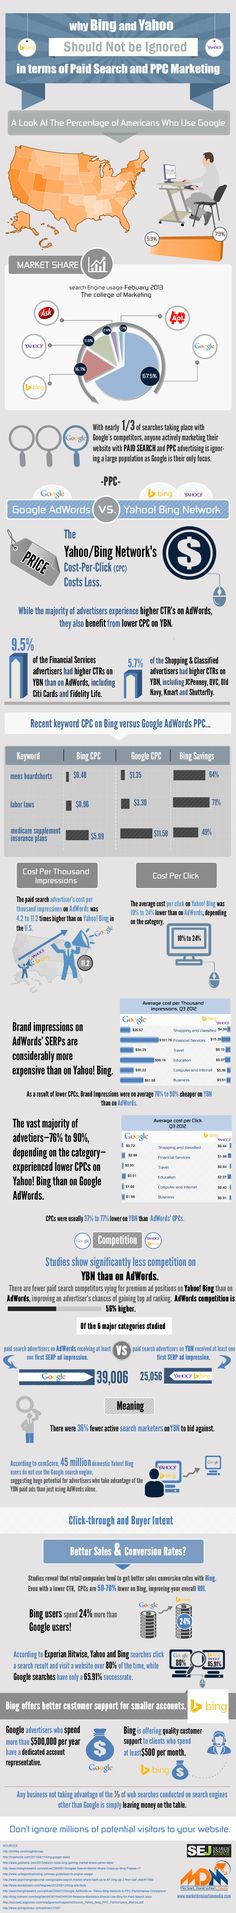 Why Bing And Yahoo Should Not Be Ignored   #Infographic #SEO #Bing #Yahoo #Marketing #PPC #SEO #seosailor  #SEO services